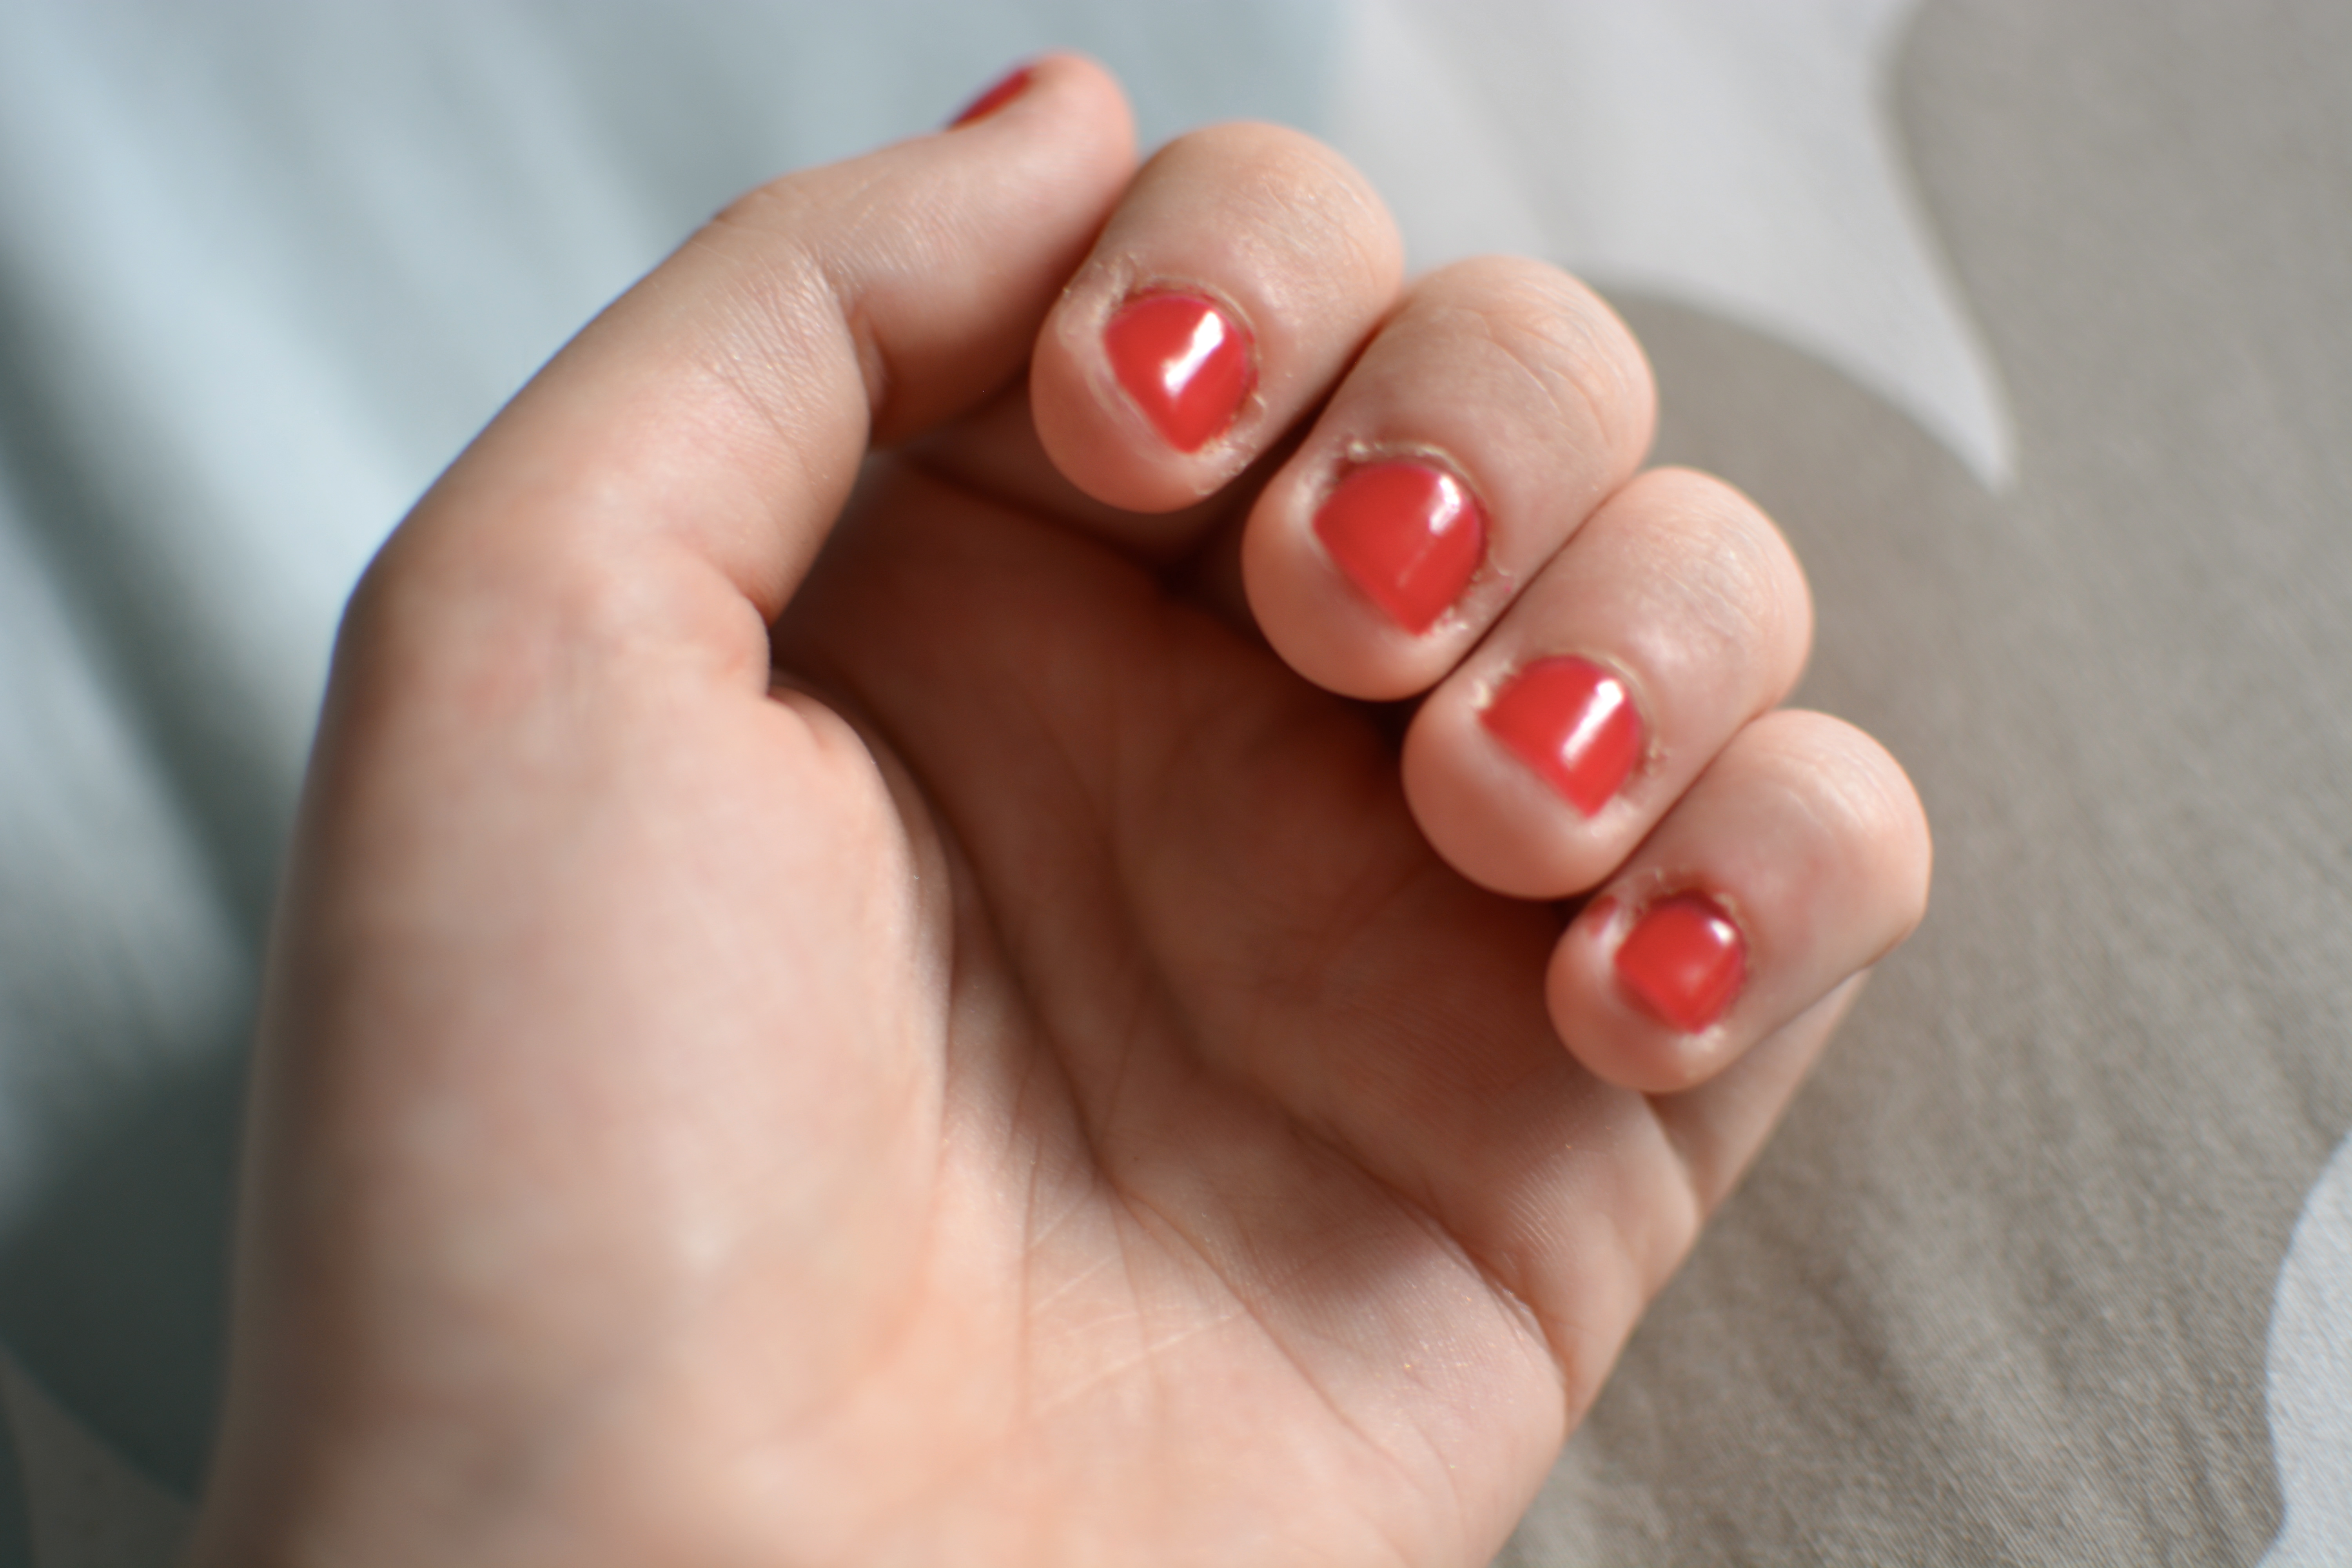 Things Are Looking Up - Review: Sally Hansen Gel Manicure Starter Kit